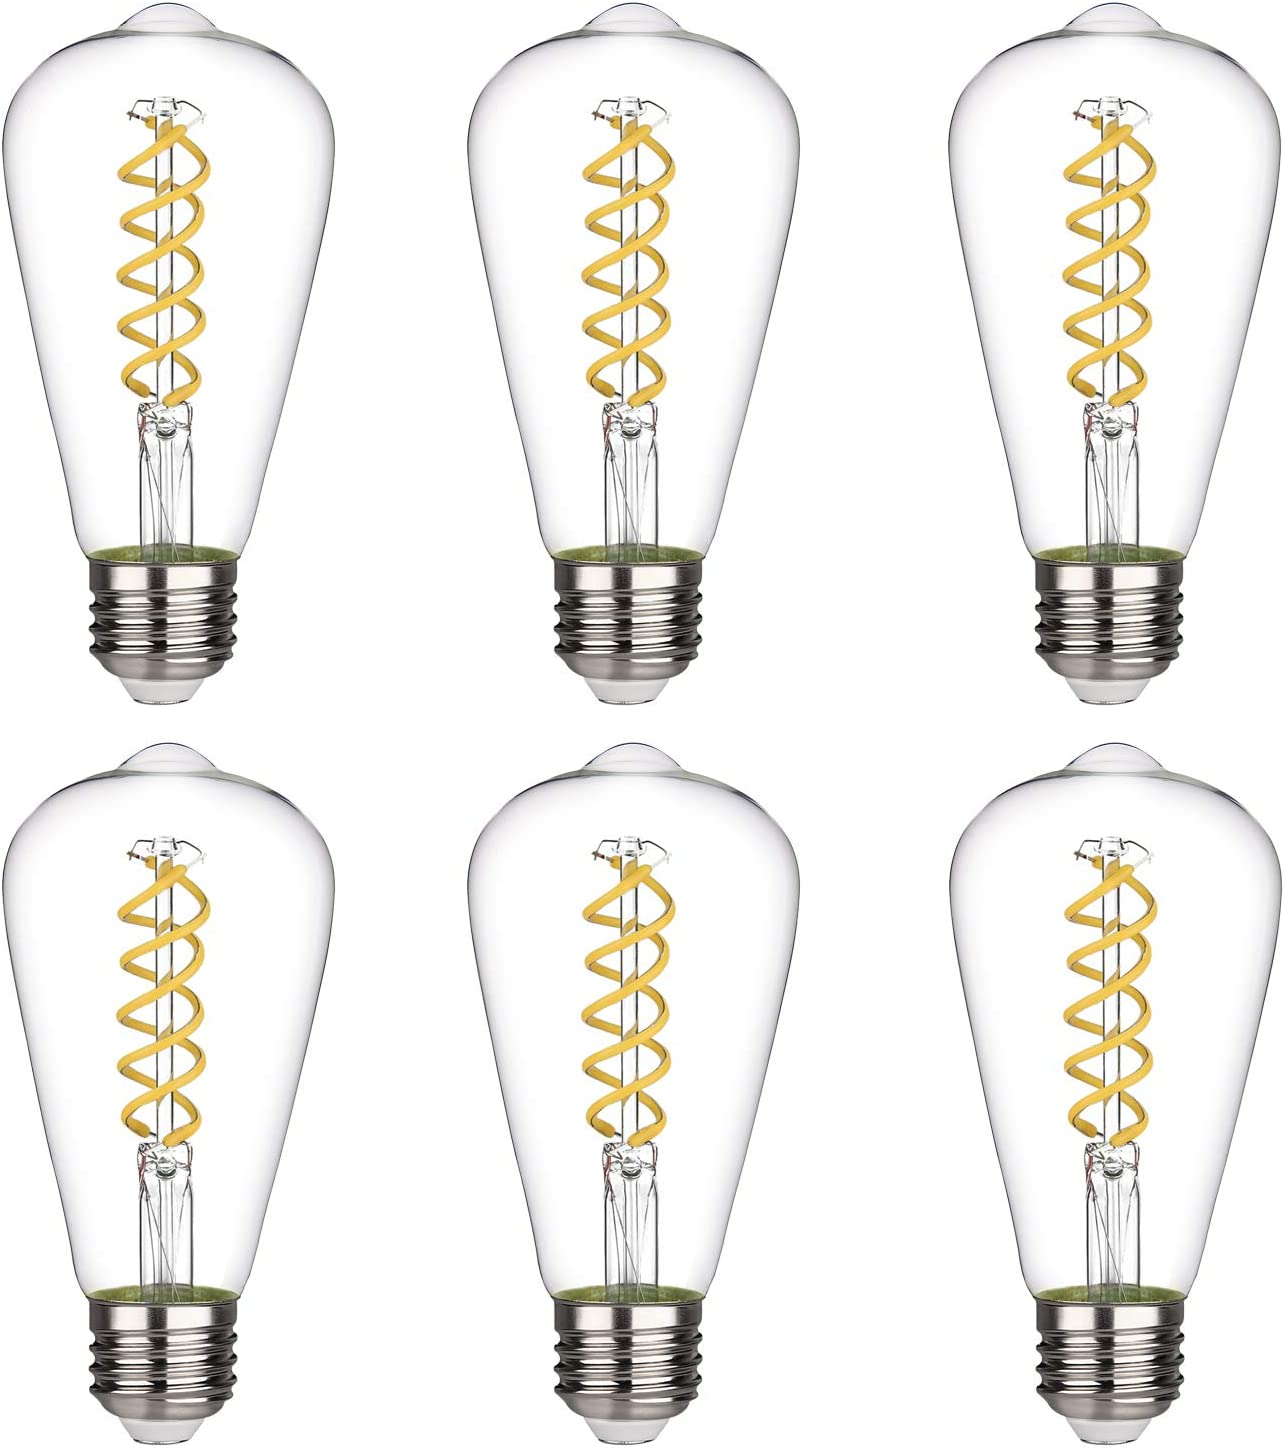 Clear Glass ST64 4.5W-2700K-4 Pack E26 Medium Base ST19 Antique Flexible Spiral LED Filament Light Bulb Dimmable 450lm 4.5W Vintage Edison LED Bulb Soft White 2700K 4.5W Equivalent to 50W